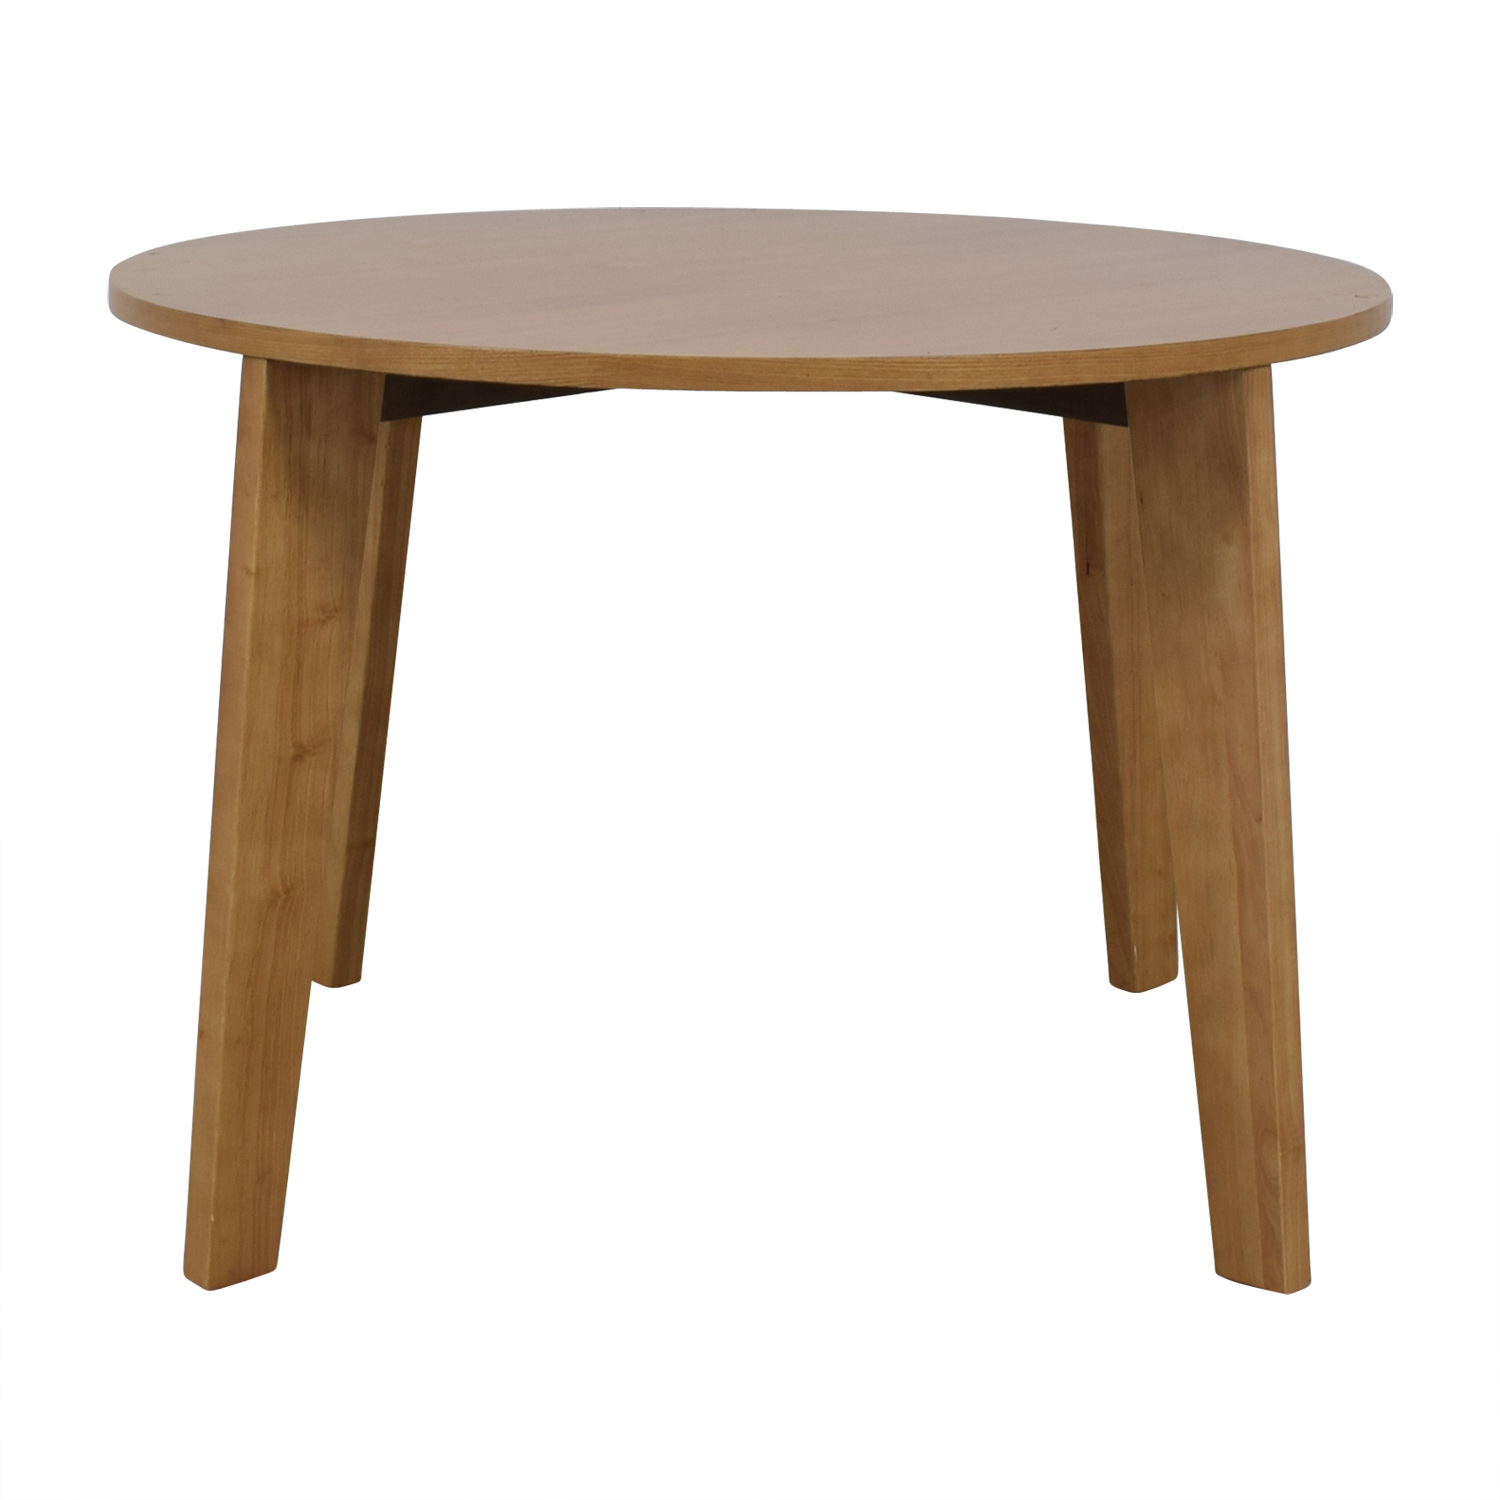 76 Off Target Target Round Dining Table Tables